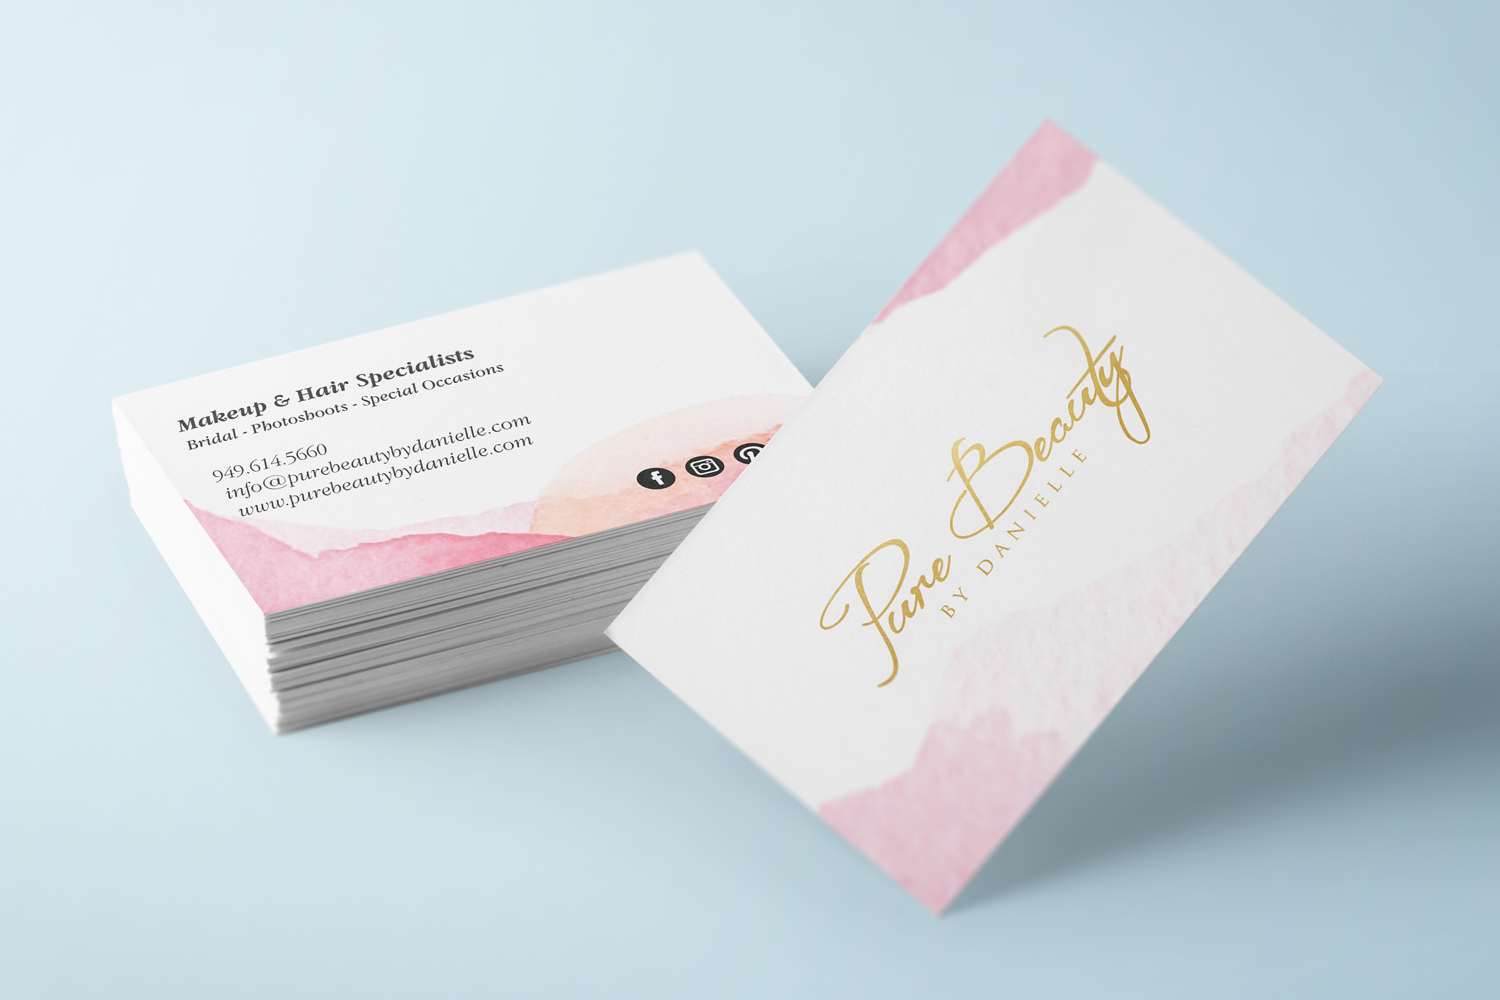 business cards can be easily carried and handed out on a whim